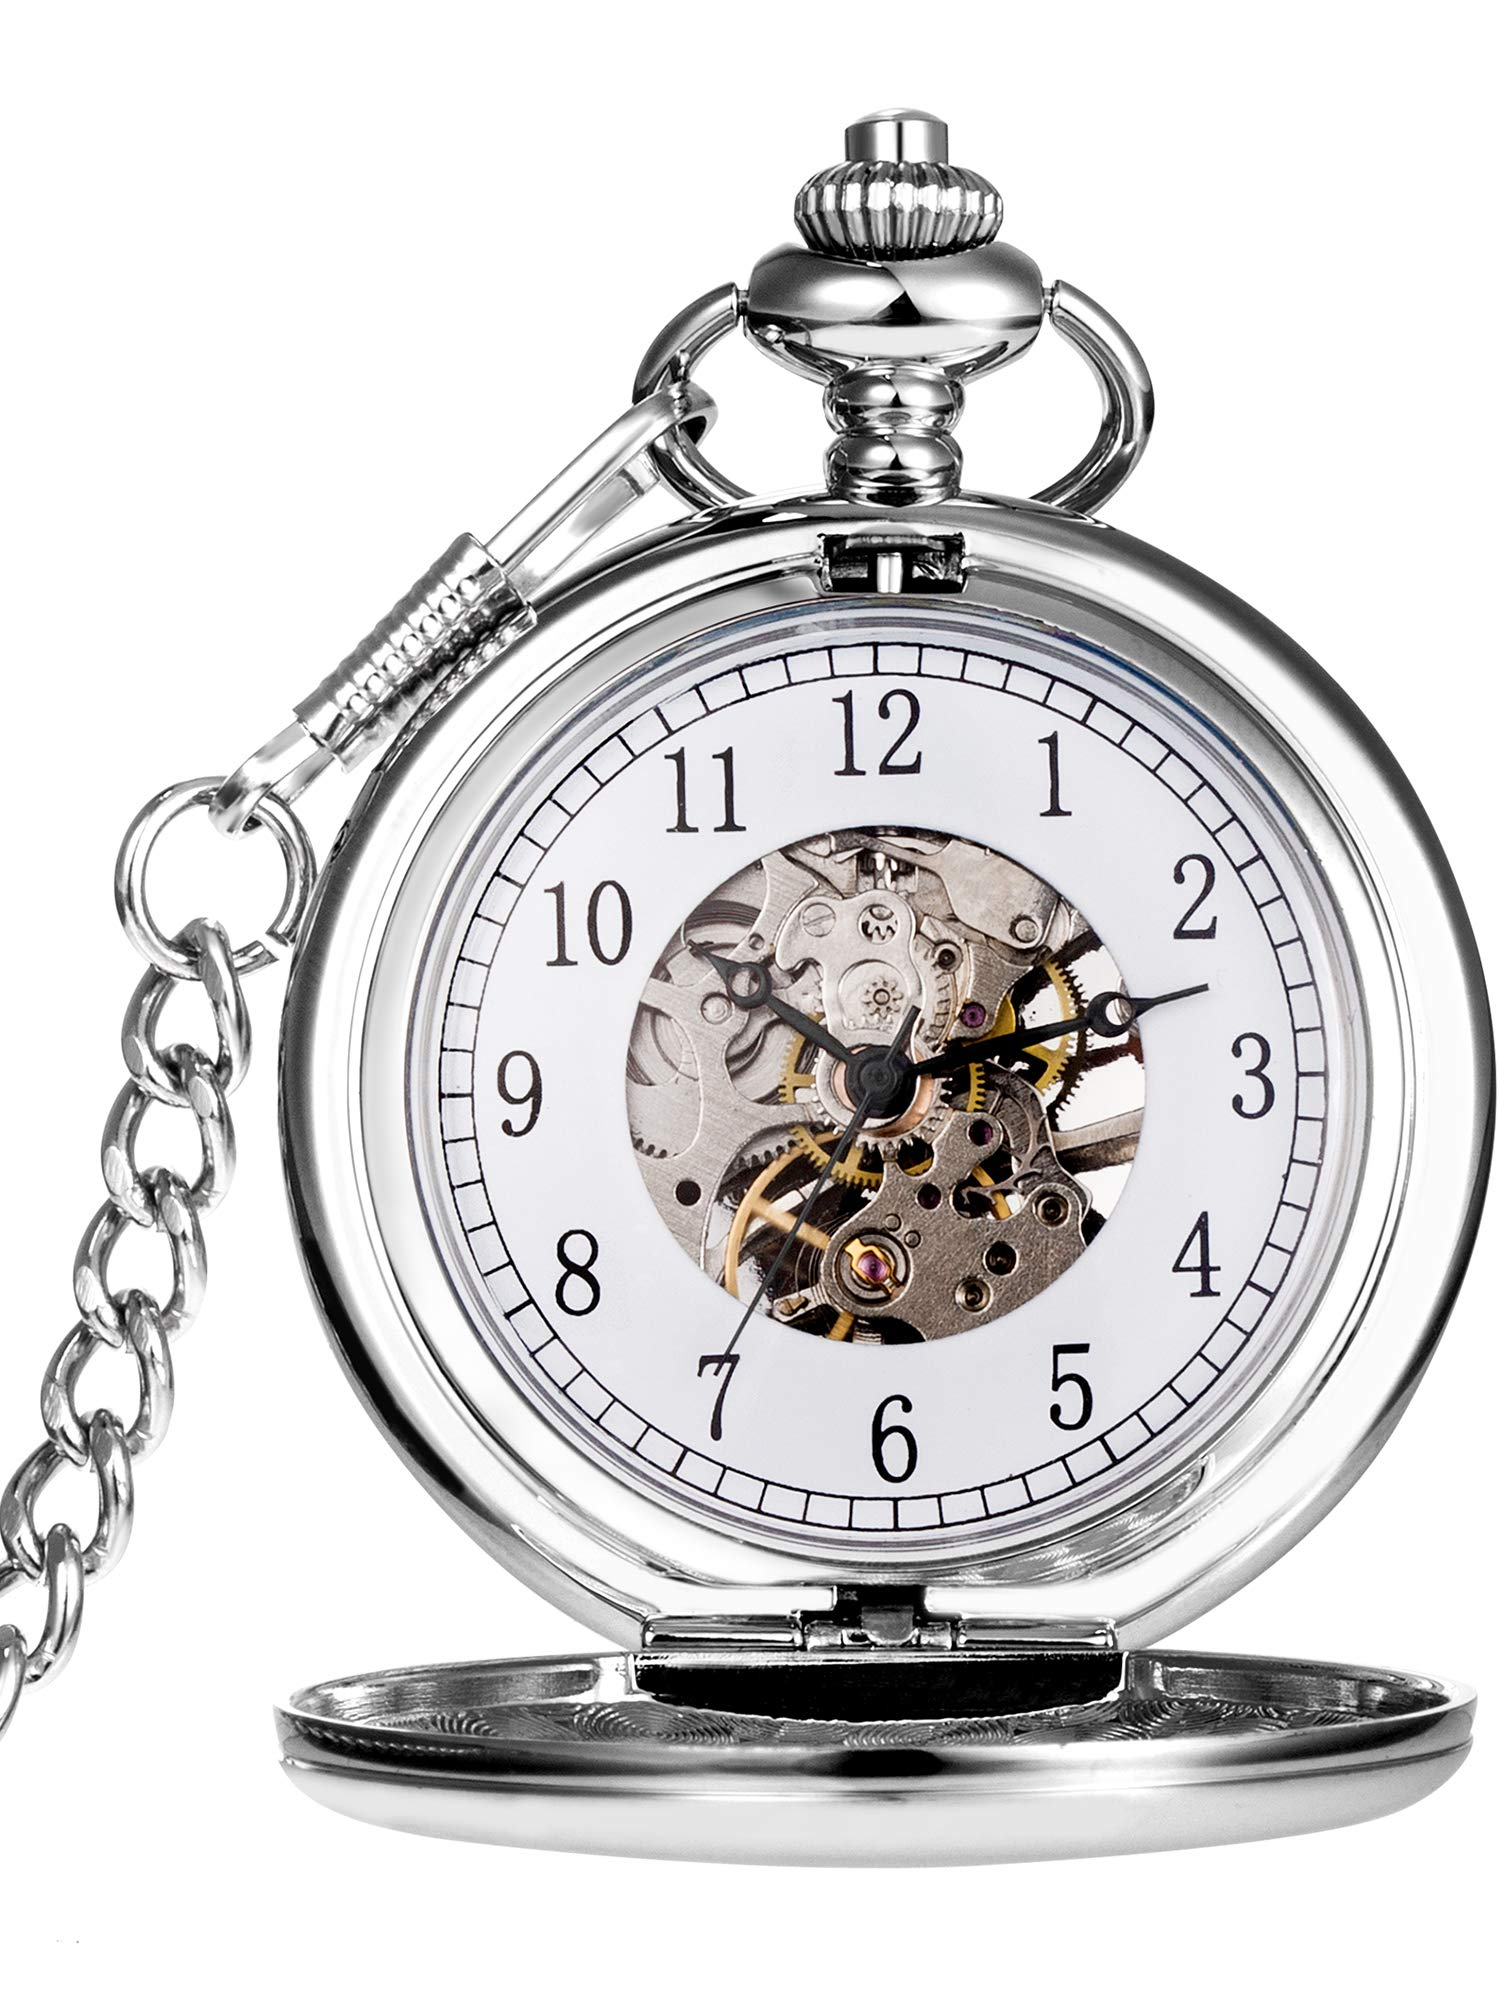 Hicarer Vintage Analog Mechanical Pocket Watch with Chain (Silver) by Hicarer